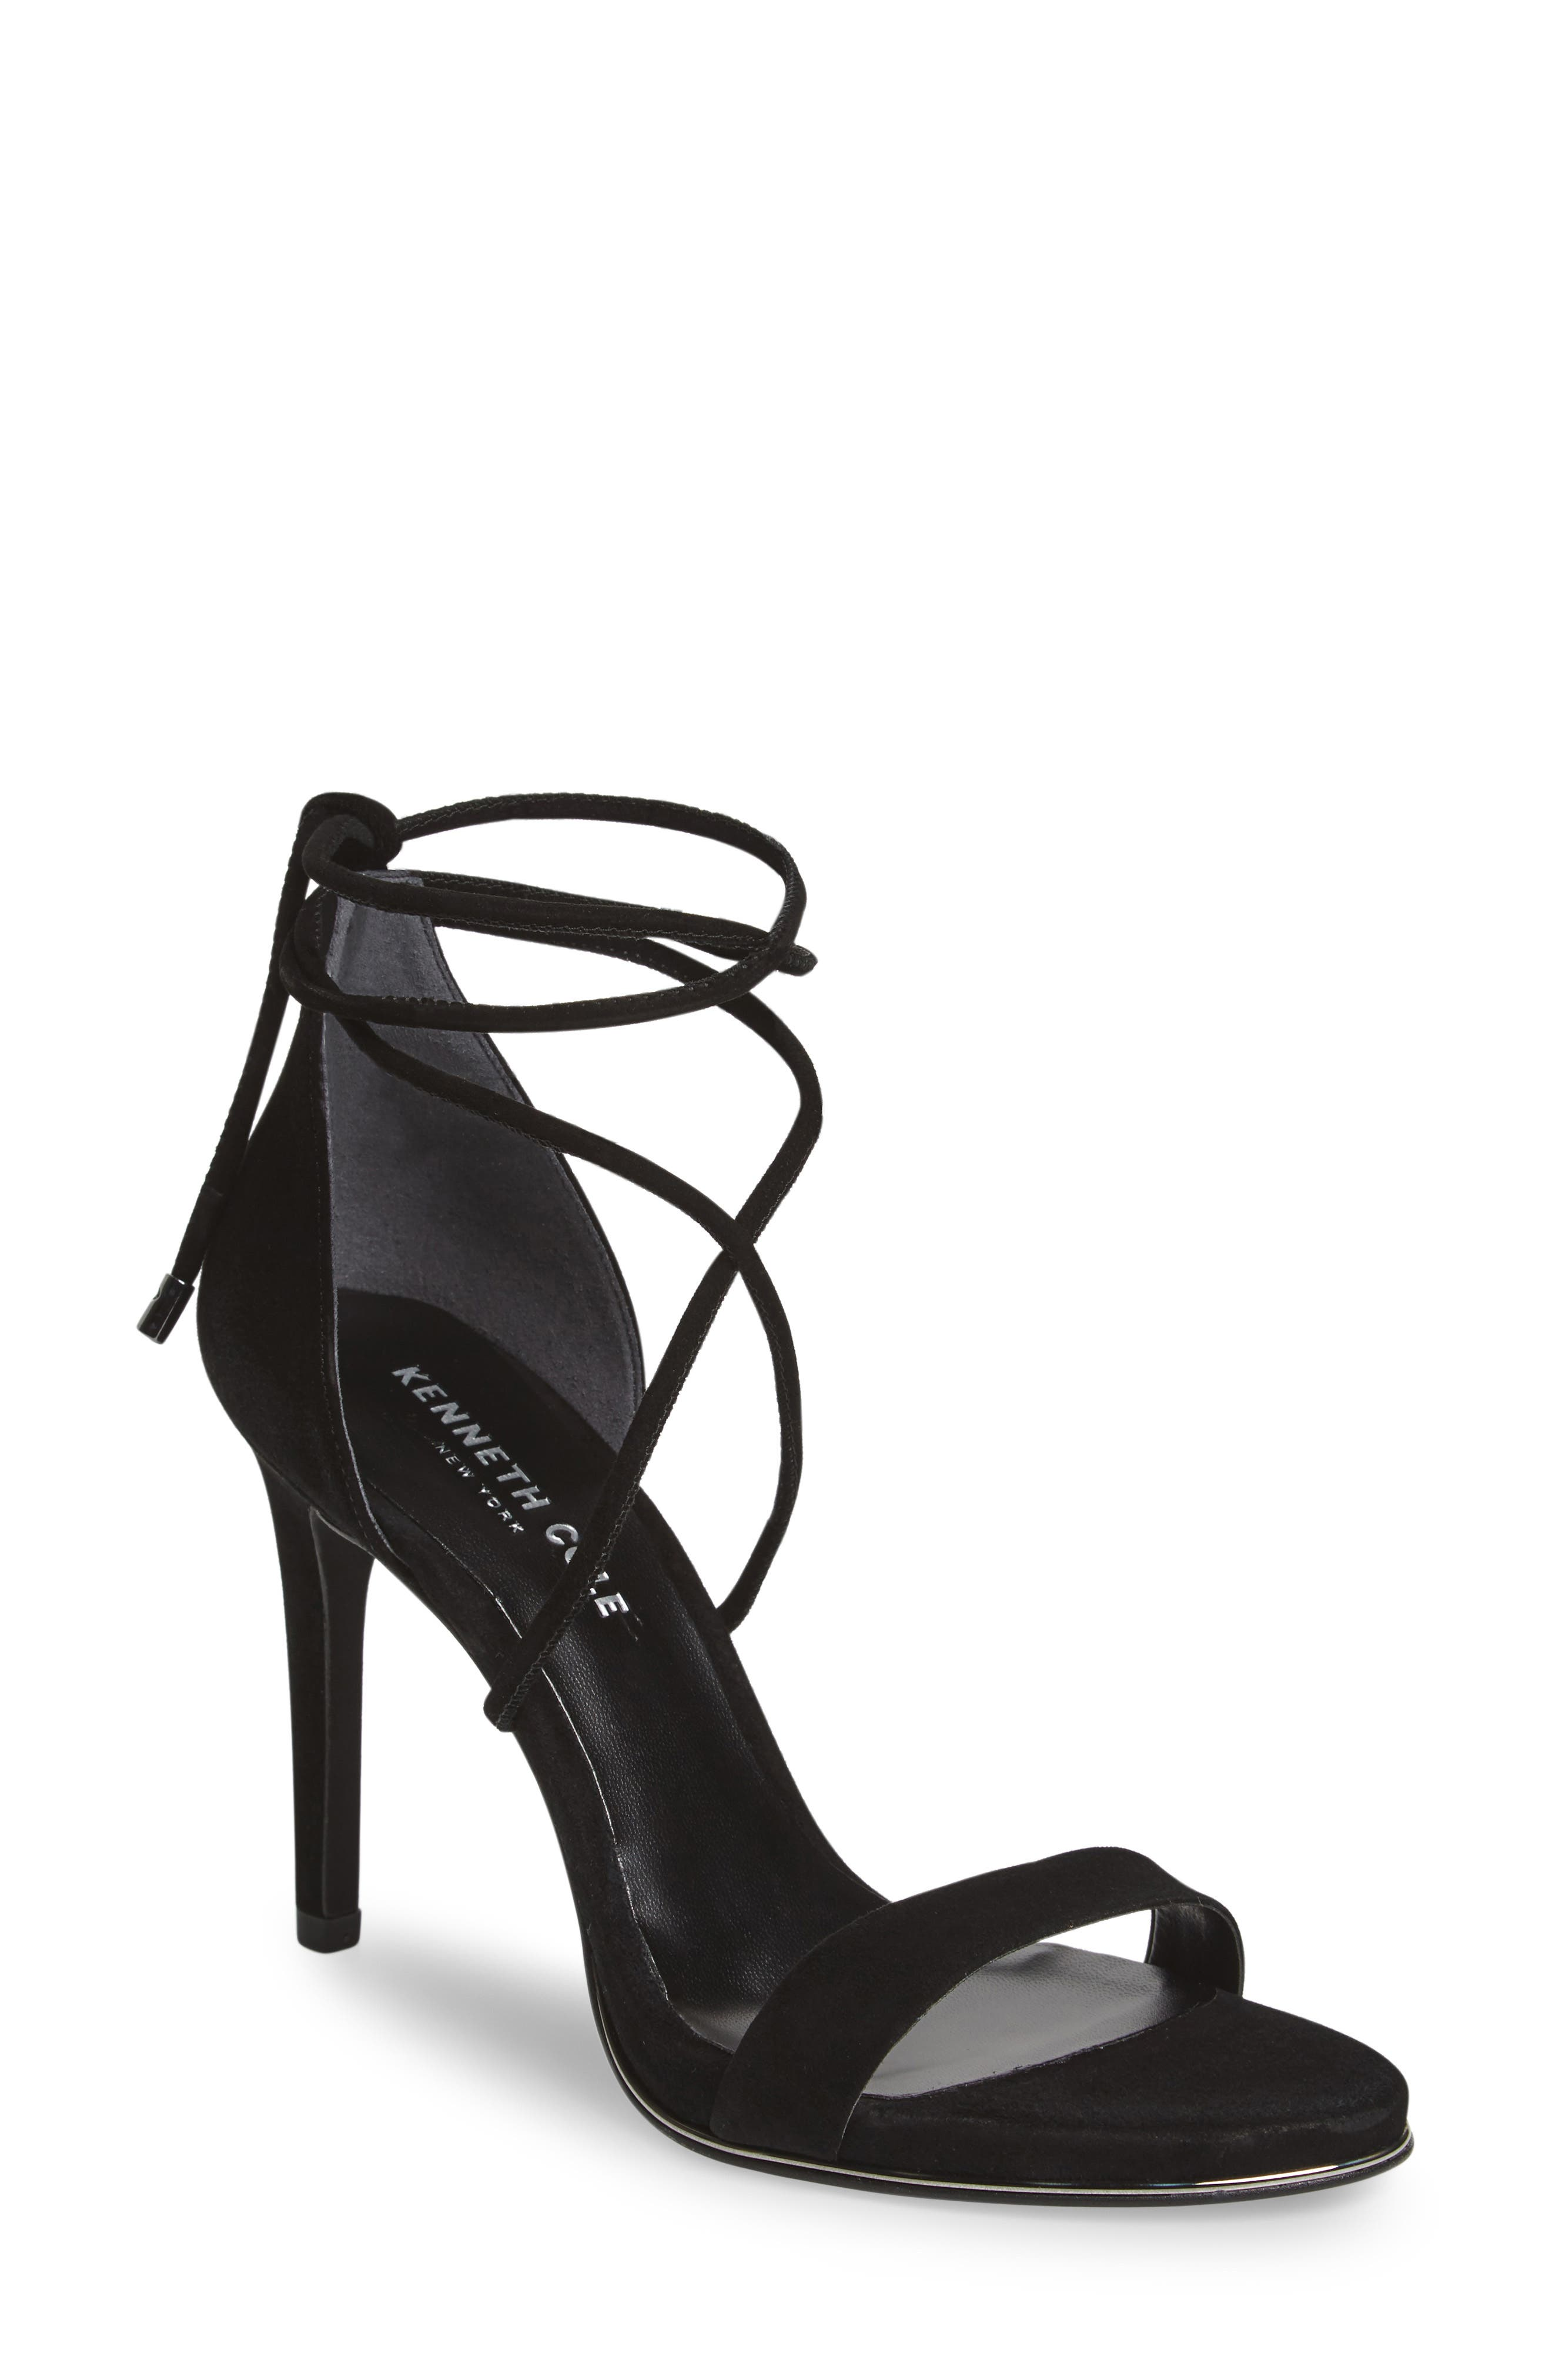 KENNETH COLE NEW YORK Berry Wraparound Sandal, Main, color, BLACK SUEDE